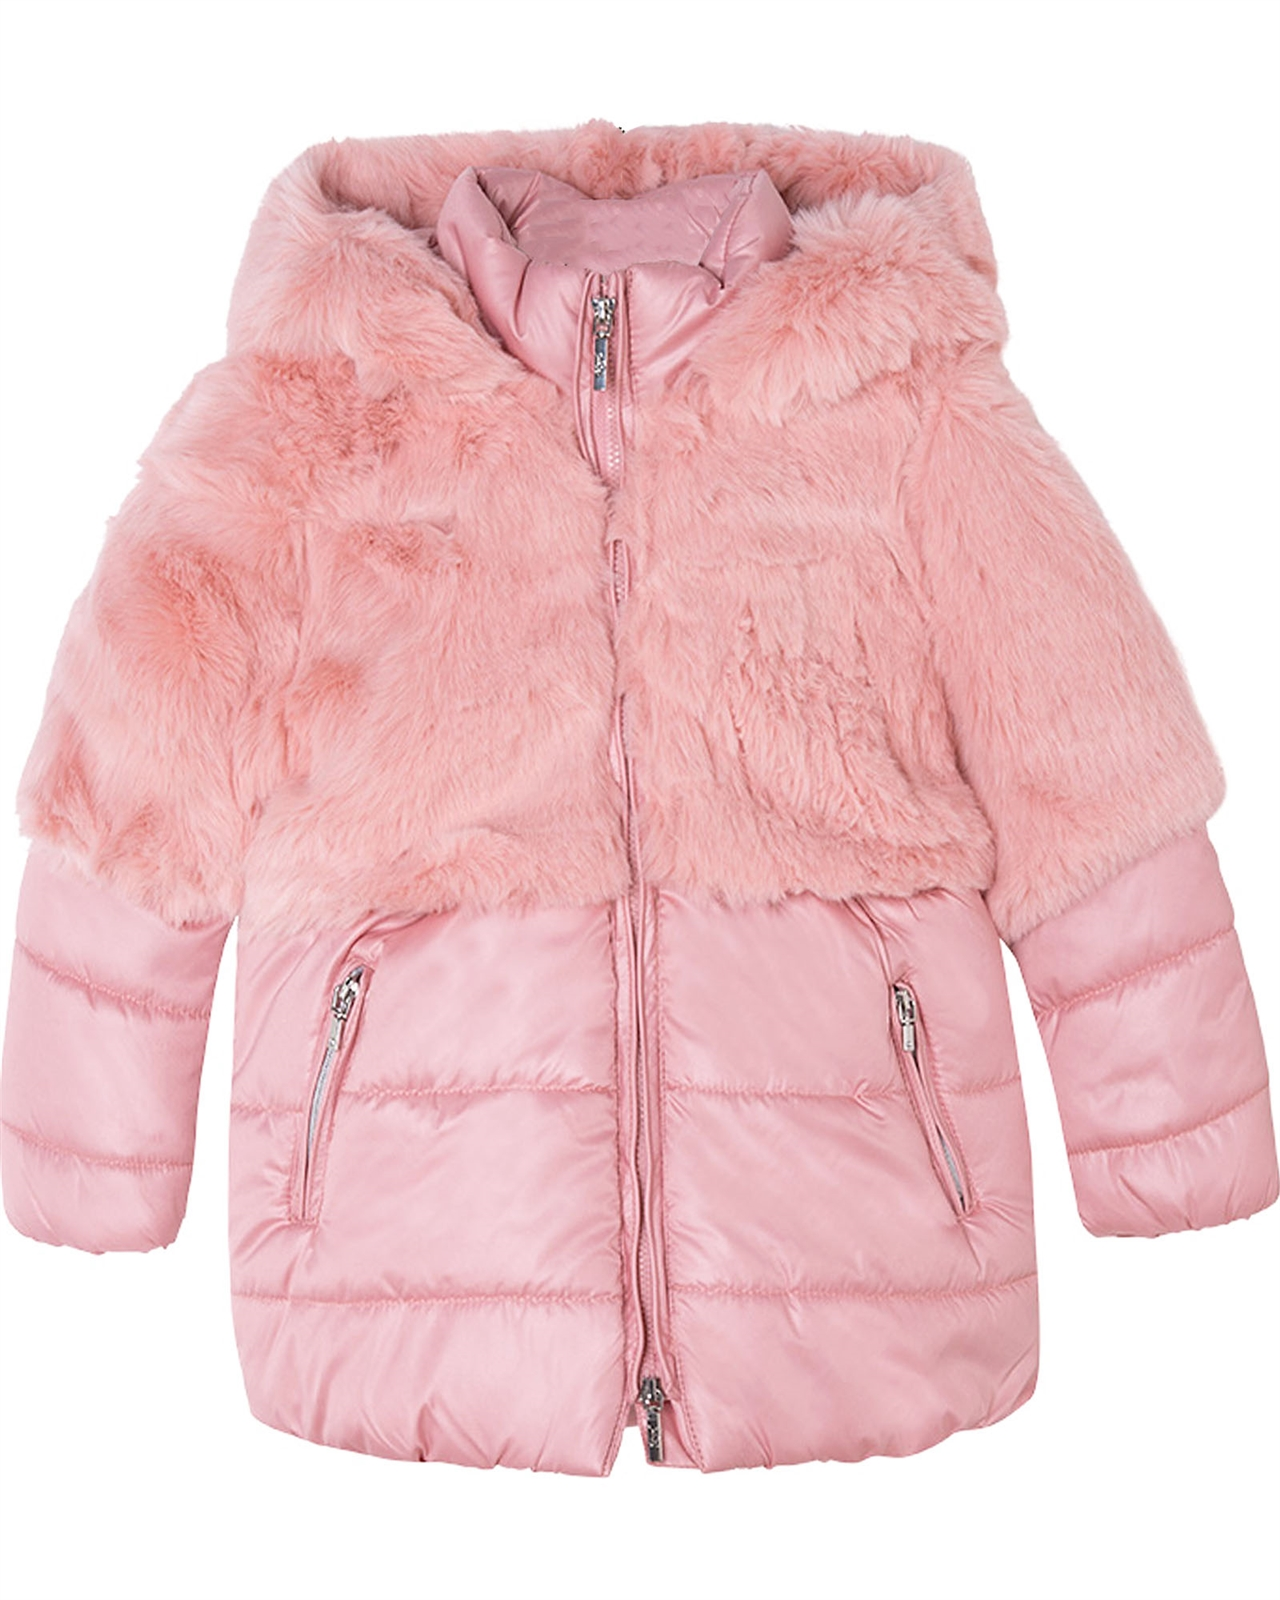 9677843c8 Mayoral Girl s Combined Faux Fur Coat - Mayoral - Mayoral Fall ...